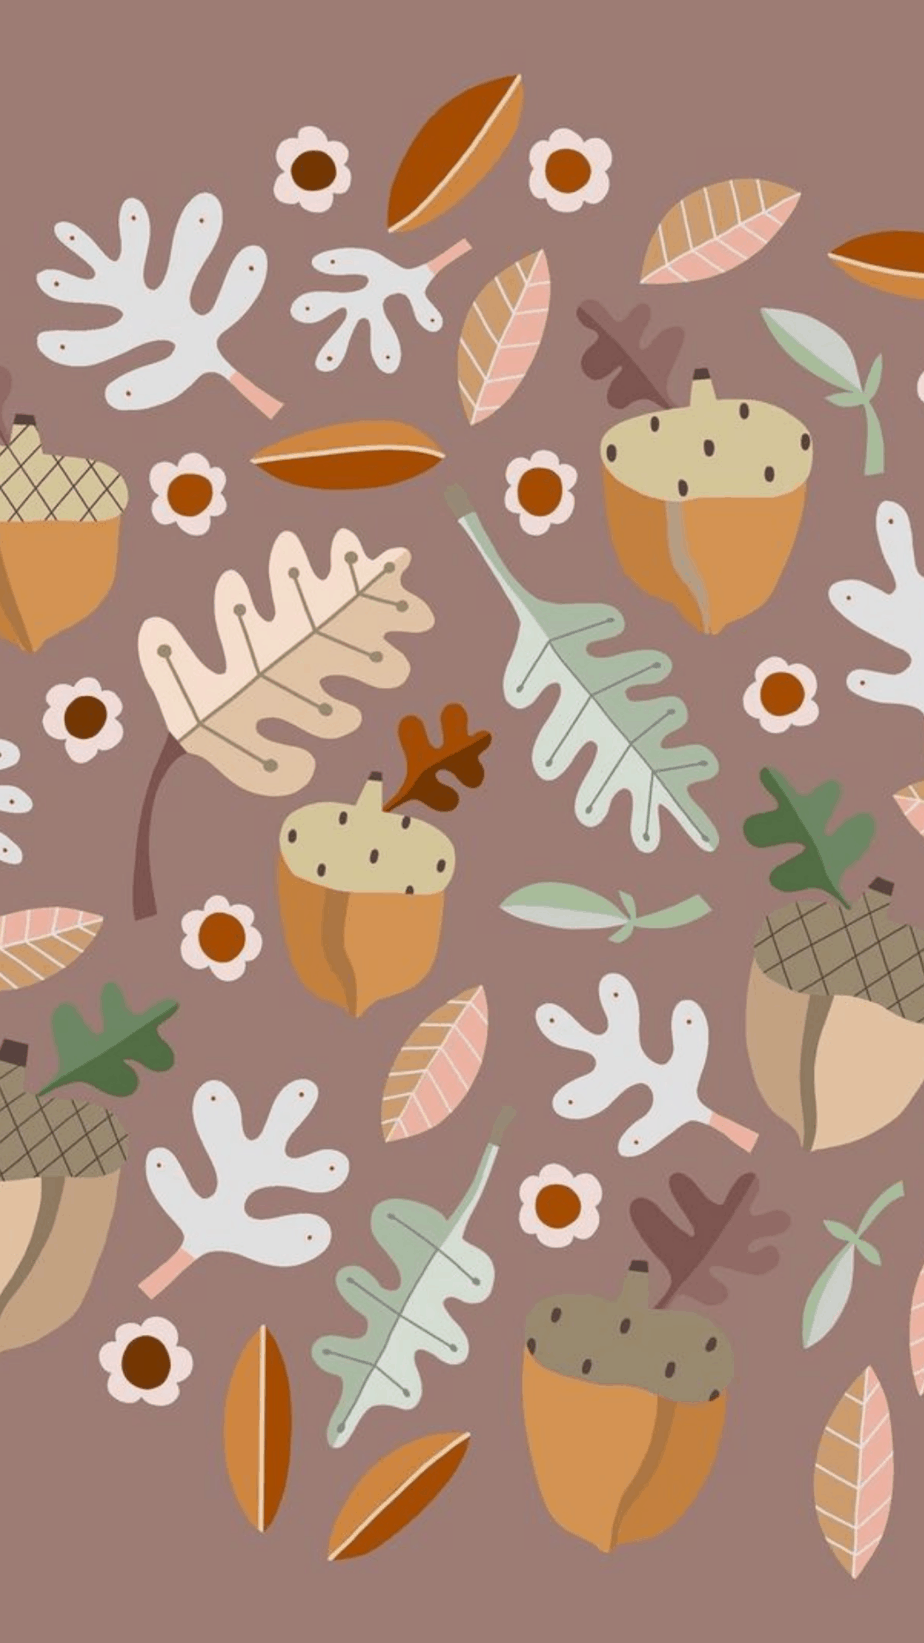 Fall Flowers and Acorns Wallpaper.You can always make your iPhone look aesthetic with cute wallpapers, these 40 beautiful and aesthetic autumn fall wallpapers for your iPhone will make you feel that autumnal fall vibes.